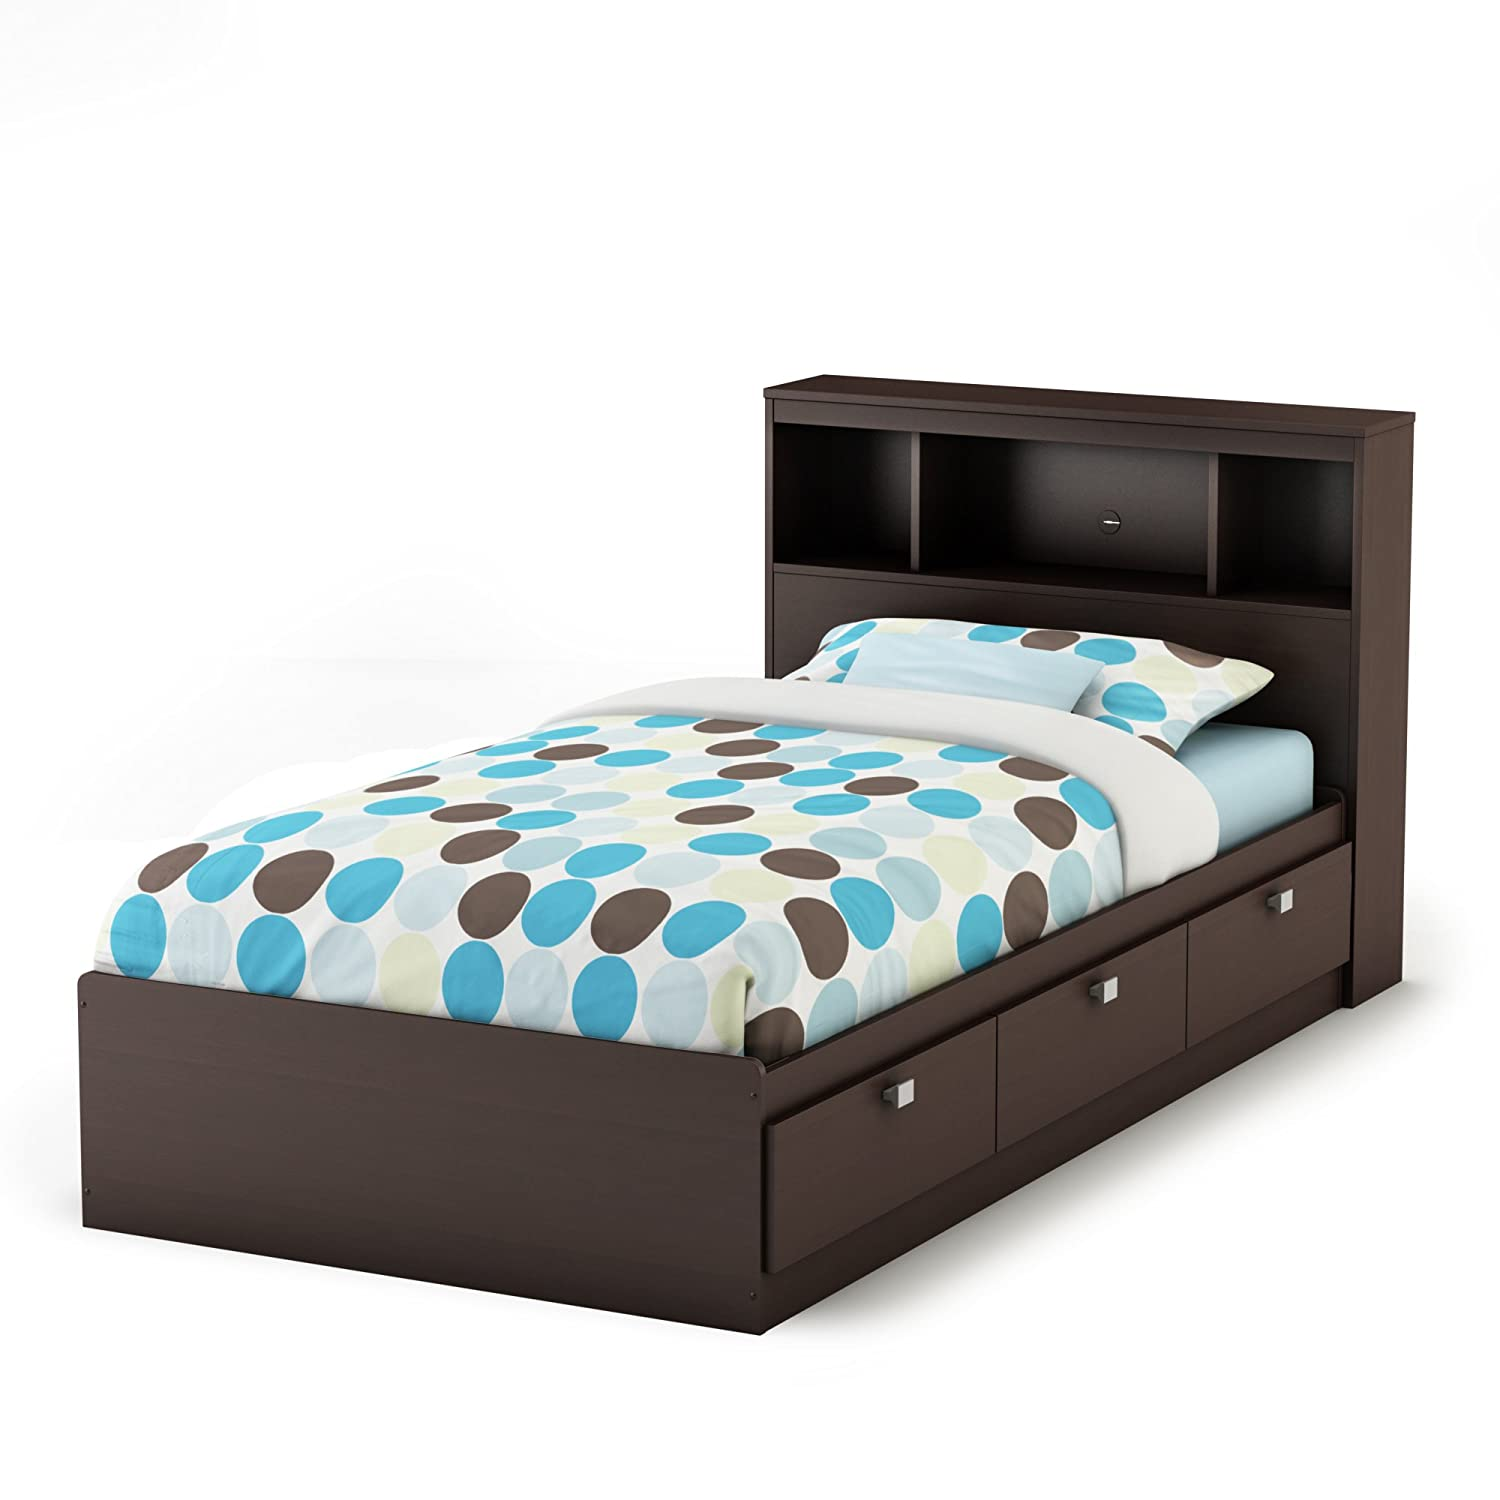 Be bed frames with headboard storage - Amazon Com South Shore Cakao Twin Storage Bed And Bookcase Headboard Chocolate